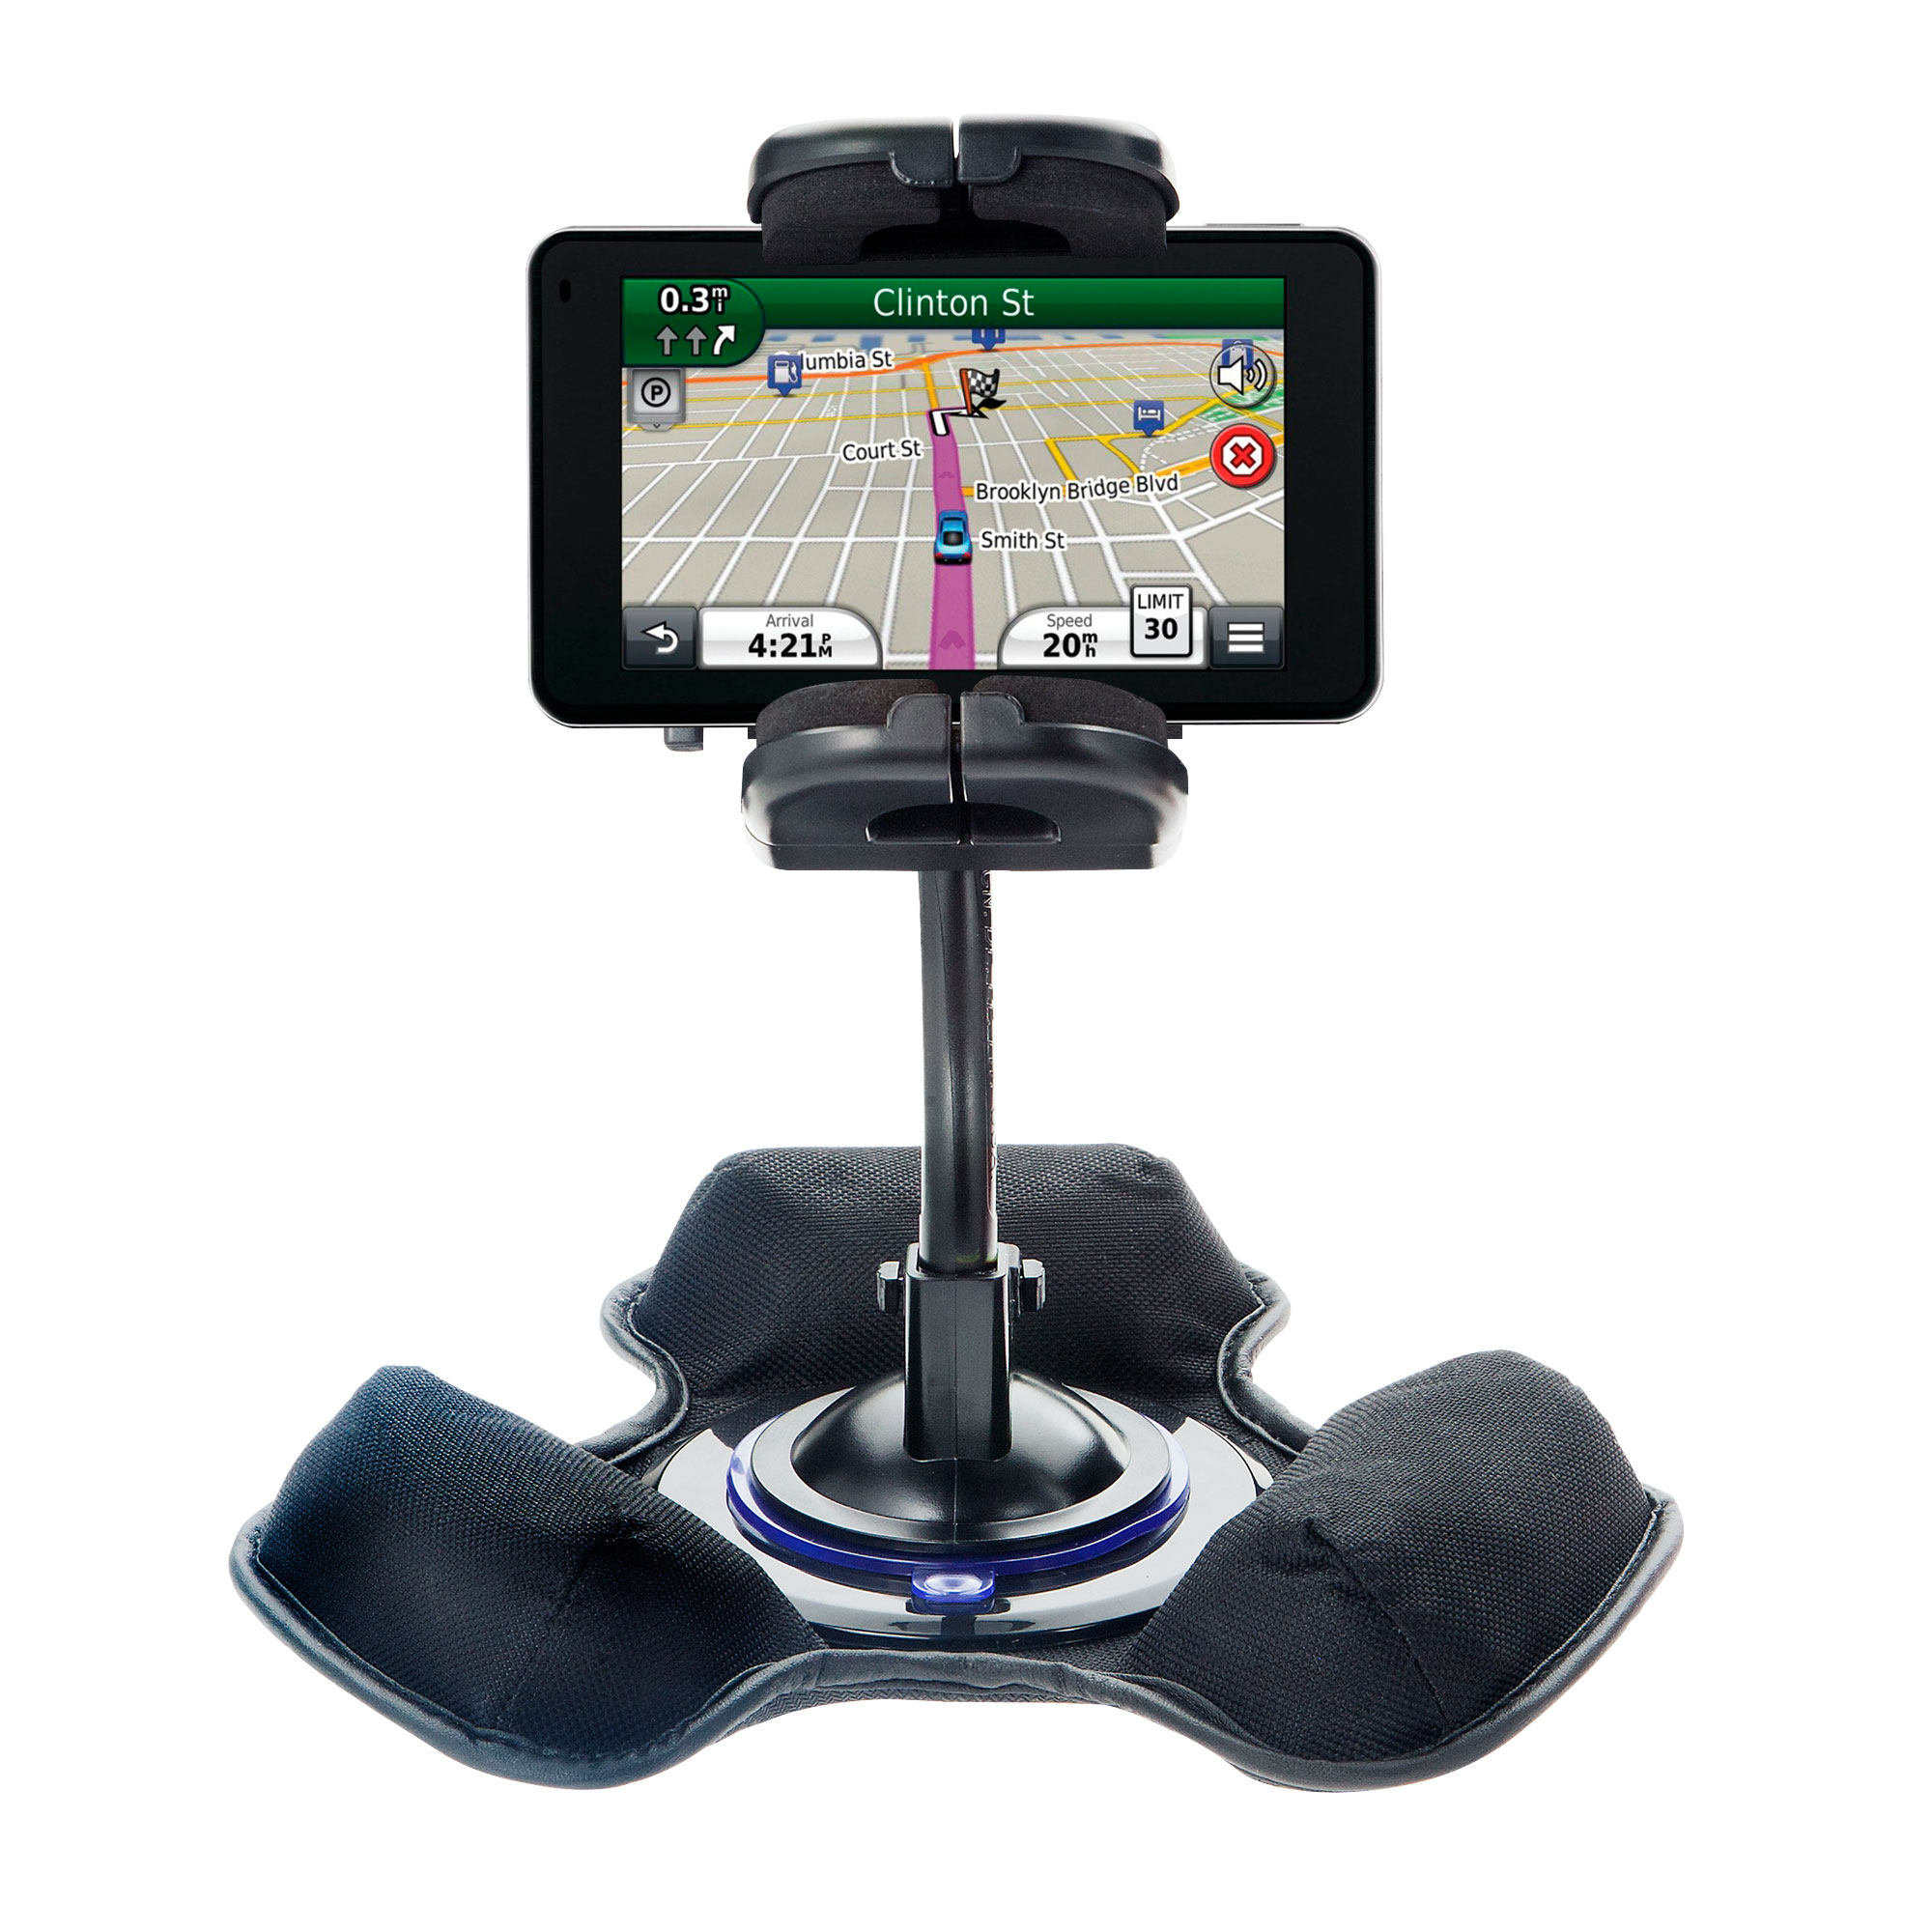 Dash and Windshield Holder compatible with the Garmin Nuvi 3490